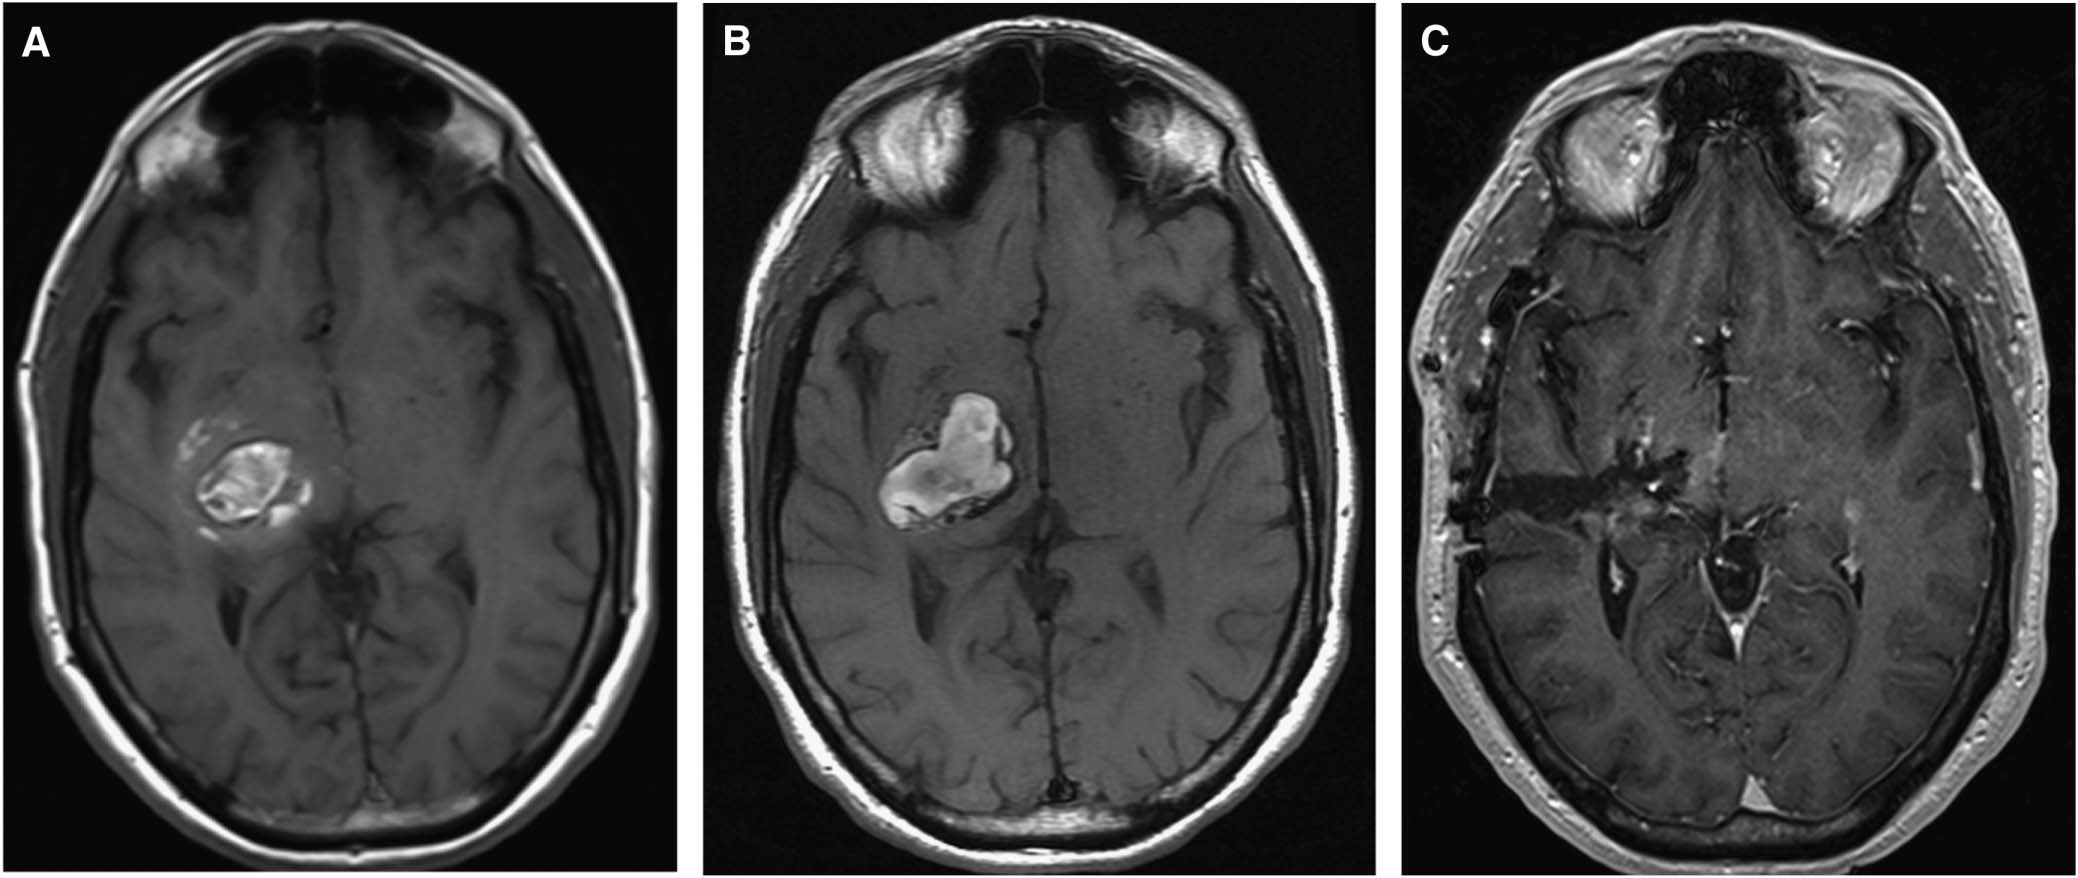 What is cerebral cavernous malformation?